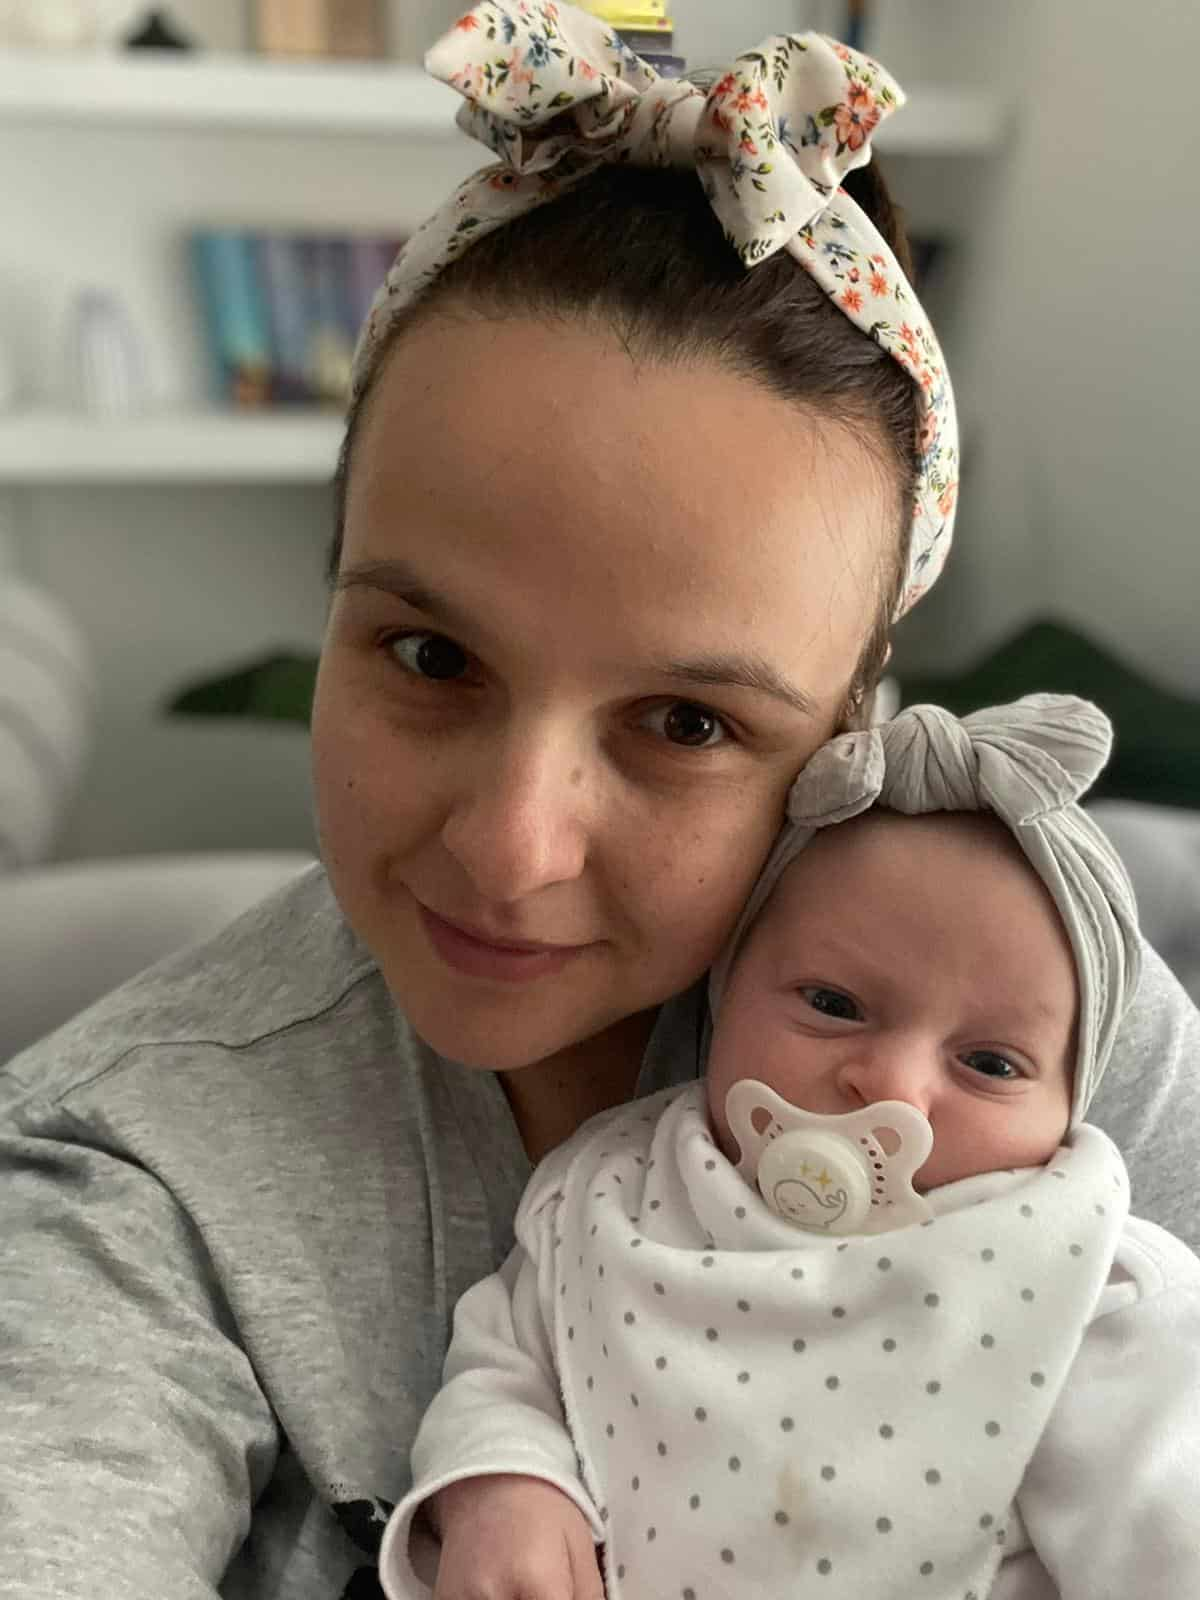 Maya, the embryologist with her own miracle